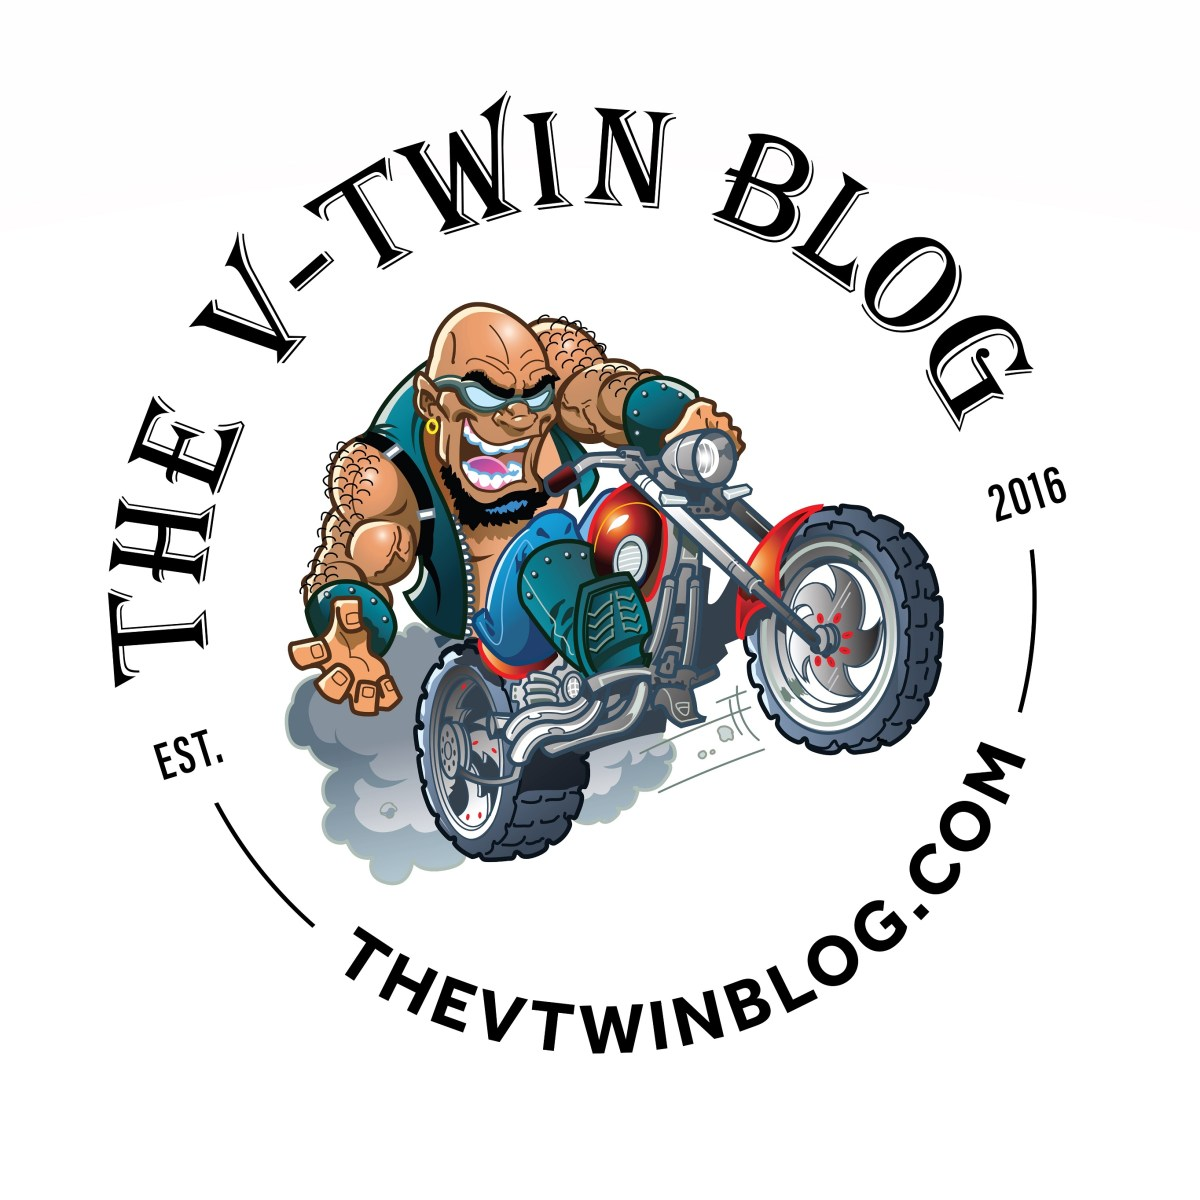 2018's Top 10 posts on The V-Twin Blog